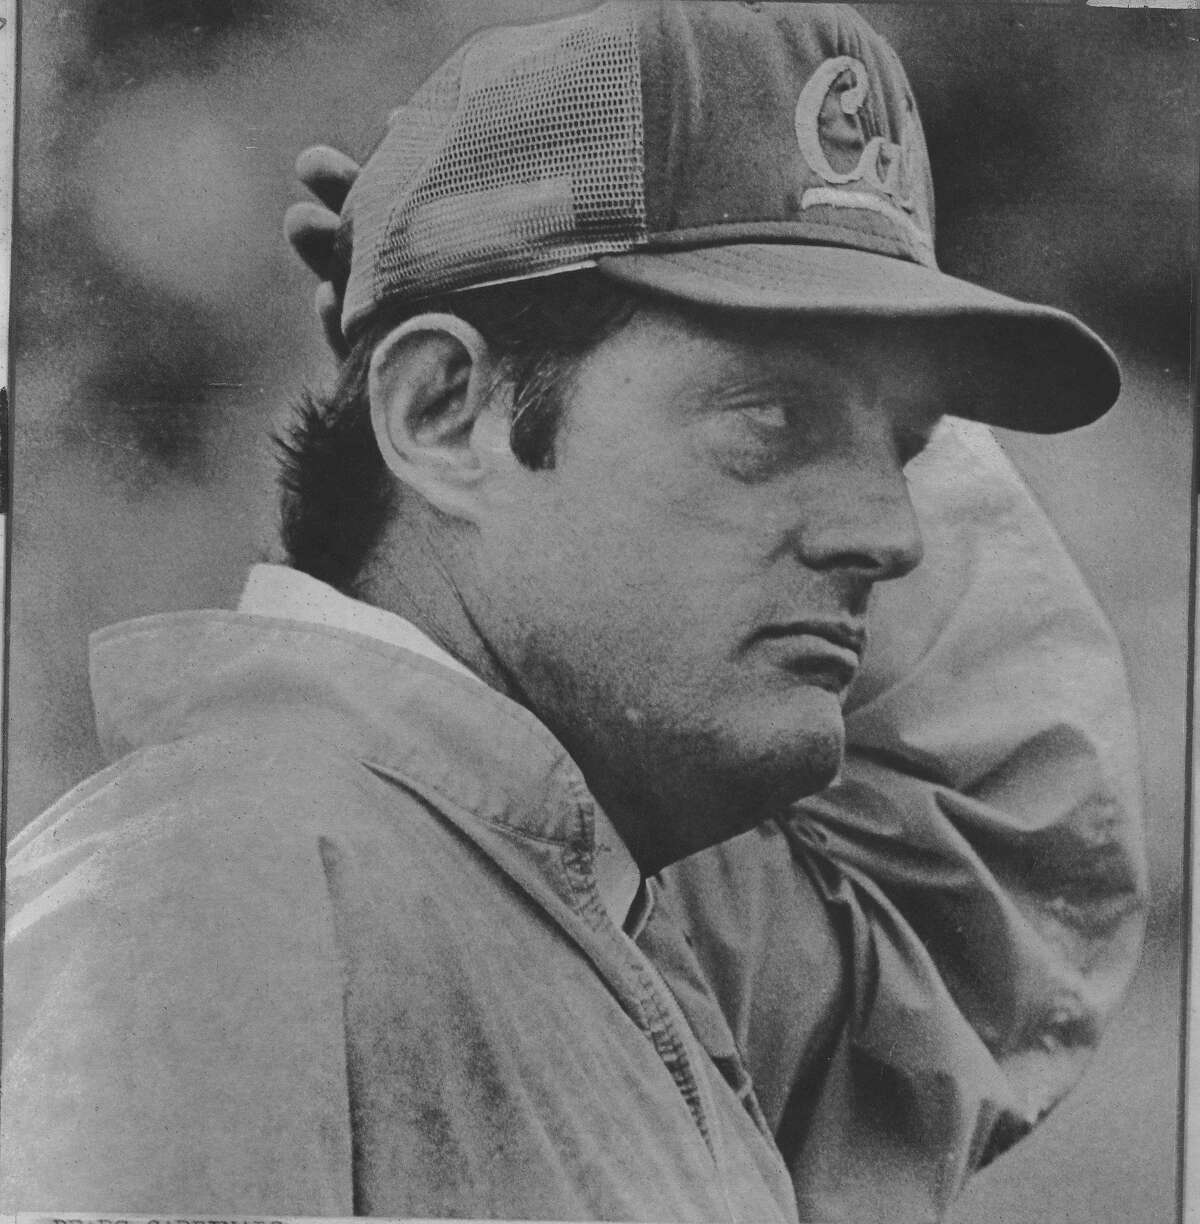 Cal football coach Roger Theder watch Cal lose to Stanford in the Big game 11/21/1981 AP photo